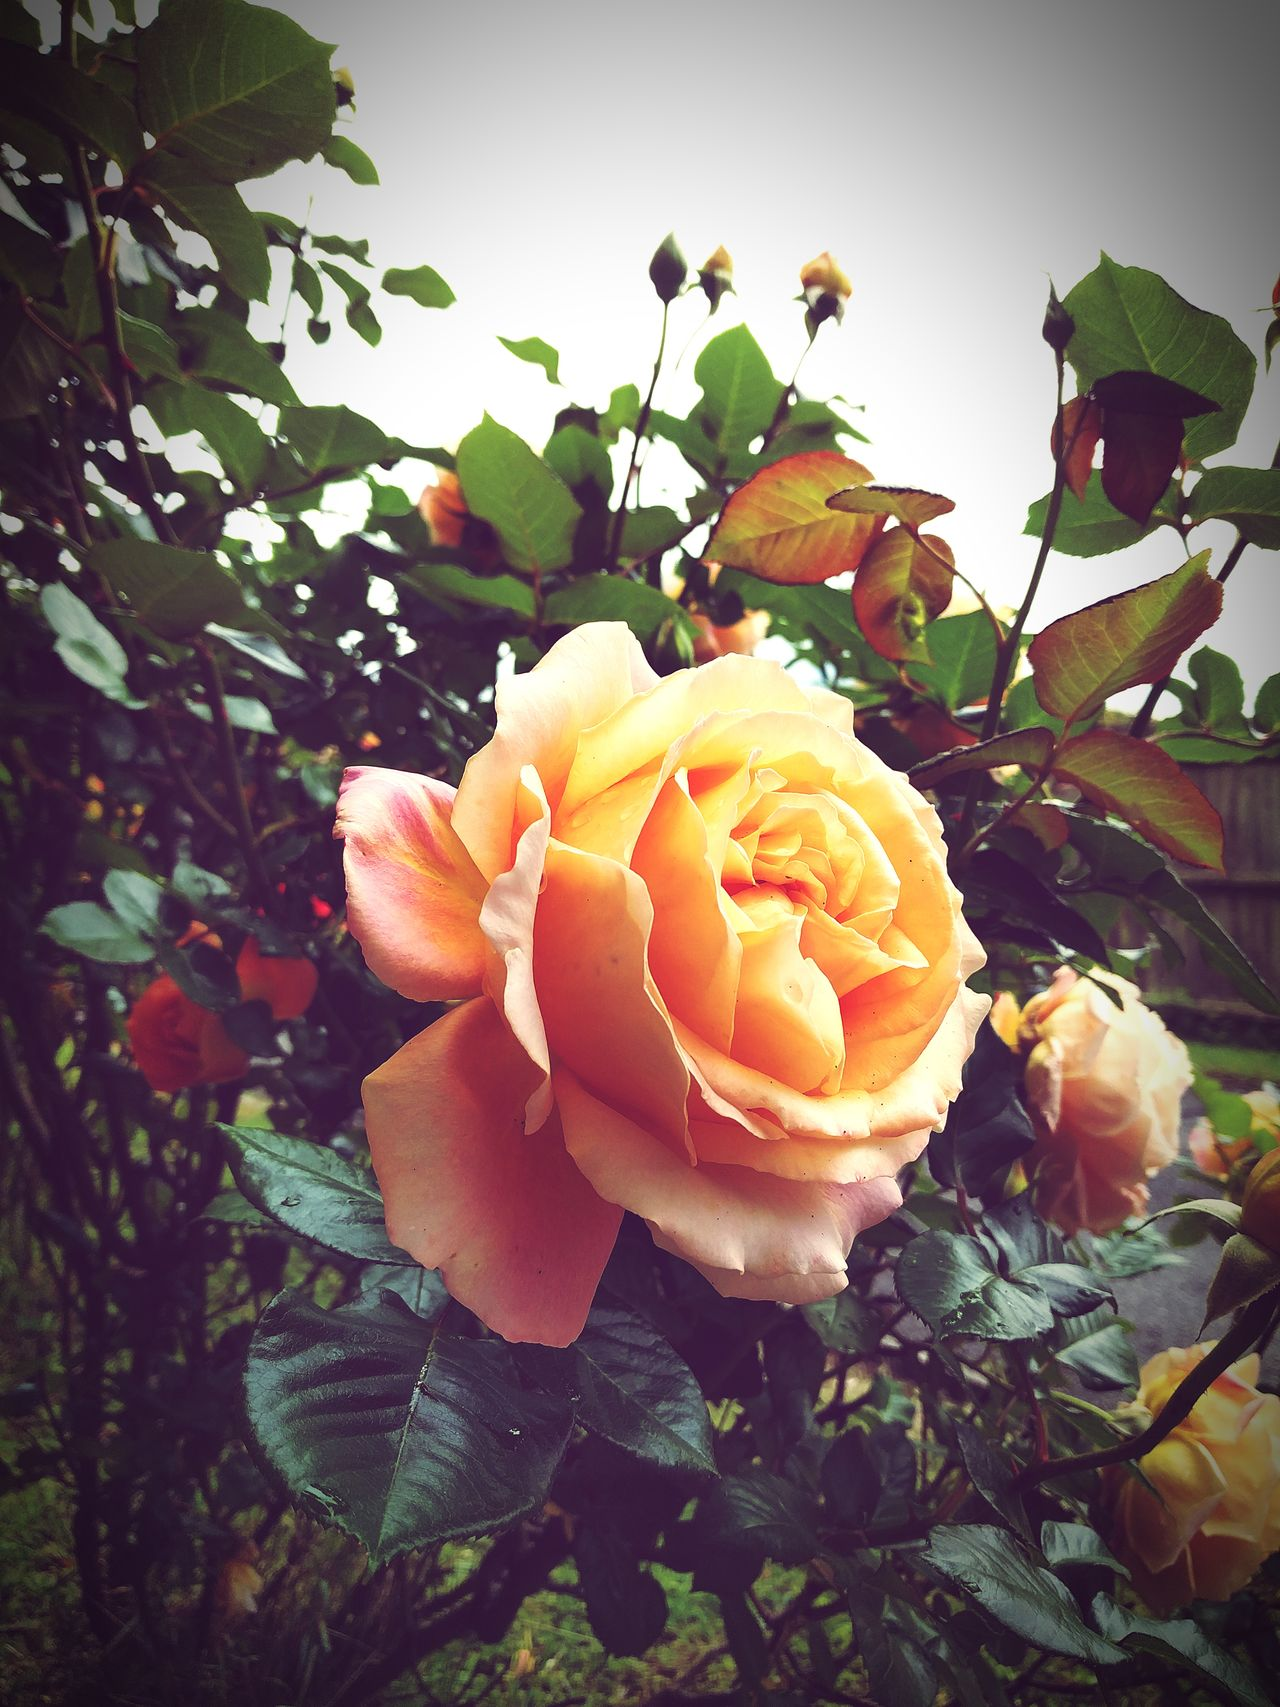 Rose Bush Nature Growth Flower Plant No People Beauty In Nature Day Outdoors Freshness Fragility Flower Head Food Close-up Yellow Rose Yellow Rose🌹 Bush